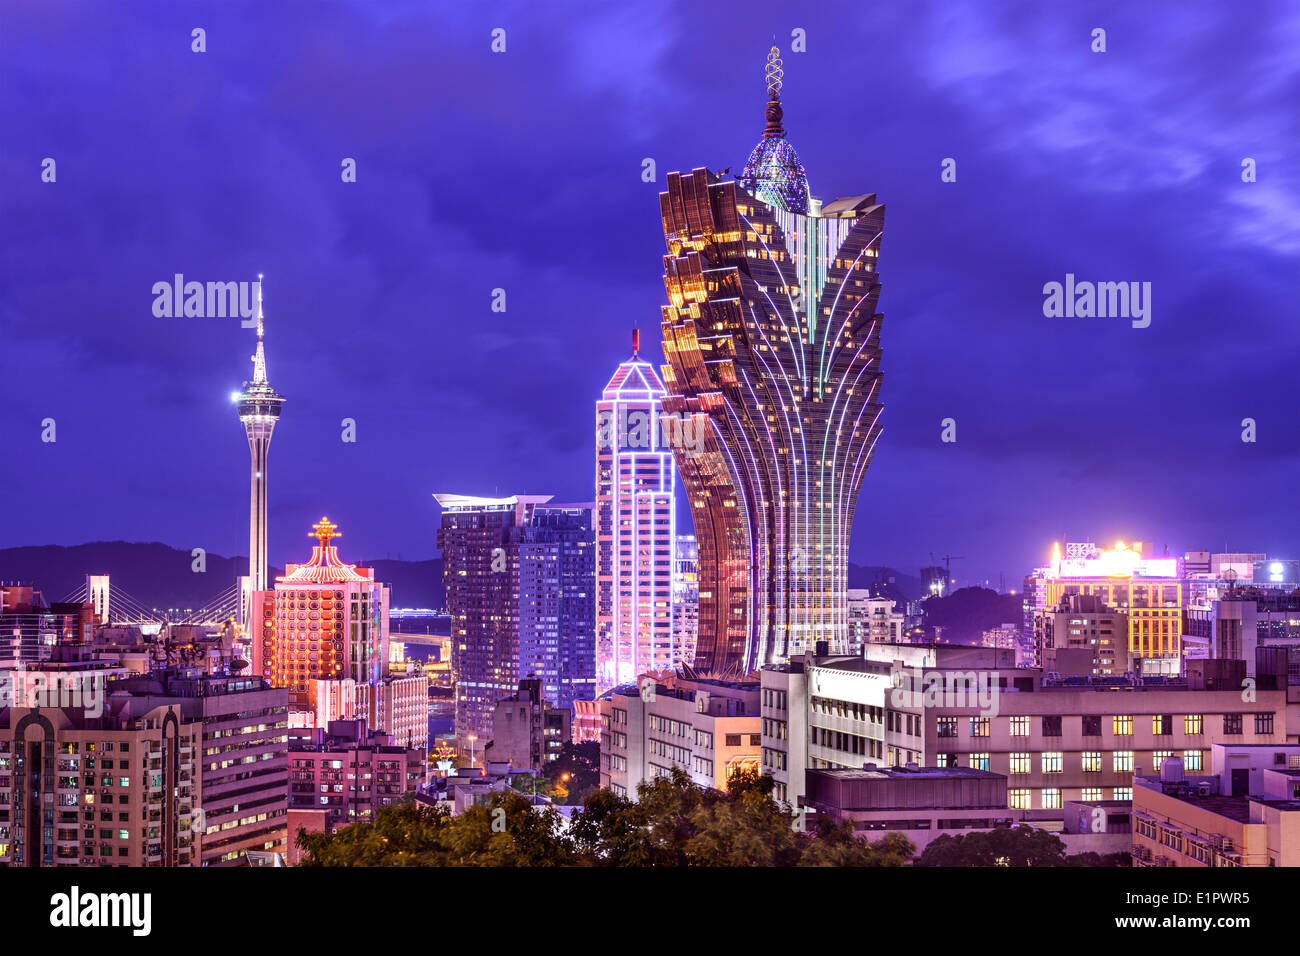 Macau, China casino cityscape. - Stock Image